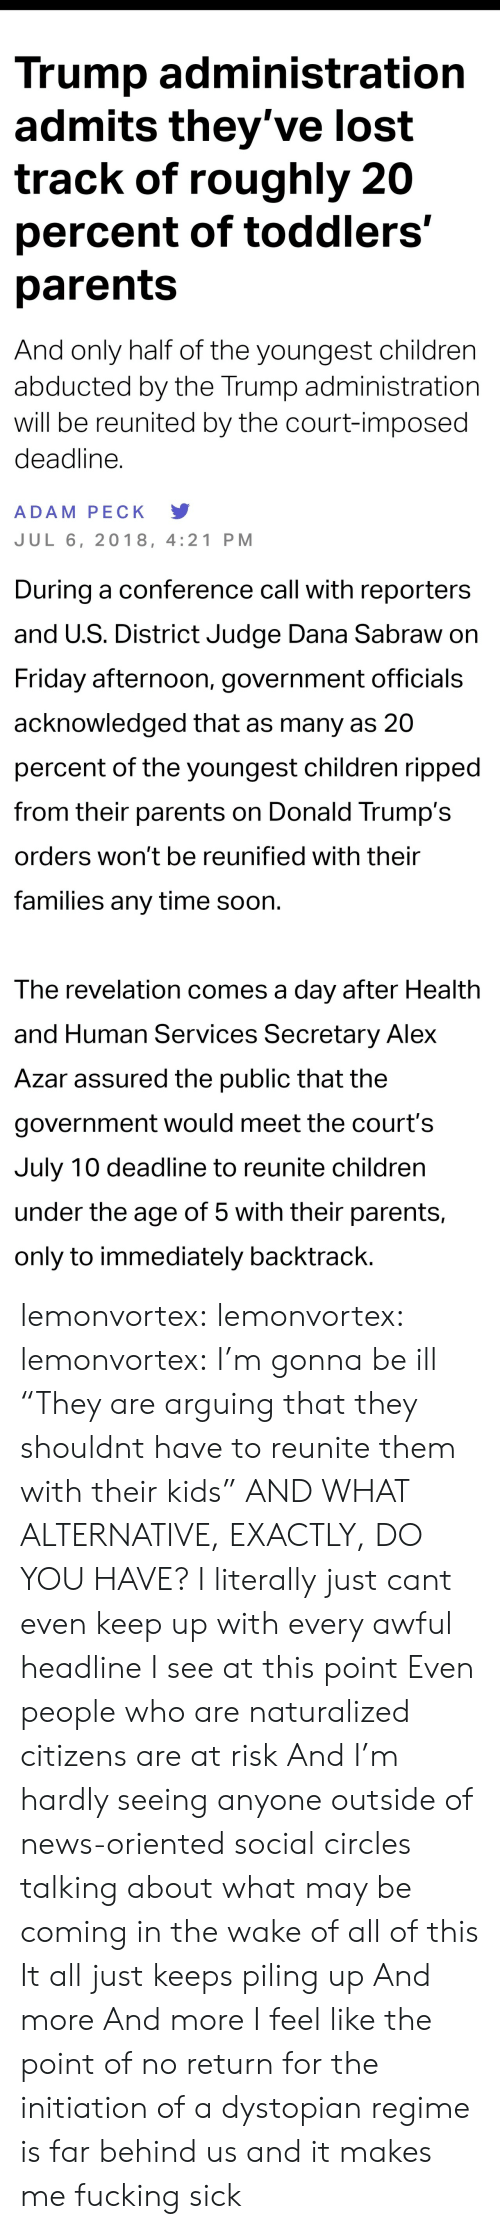 "Children, Friday, and Fucking: Trump administratiorn  admits they've lost  track of roughly 20  percent of toddlers'  parents  And only half of the youngest children  abducted by the Trump administration  will be reunited by the court-imposed  deadline.  ADAM PECK Y  JUL 6, 2018, 4:21 PM   During a conference call with reporters  and U.S. District Judge Dana Sabraw on  Friday afternoon, government officials  acknowledged that as many as 20  percent of the youngest children ripped  from their parents on Donald Trump's  orders won't be reunified with their  families any time soon  The revelation comes a day after Health  and Human Services Secretary Alex  Azar assured the public that the  government would meet the court's  July 10 deadline to reunite children  under the age of 5 with their parents,  only to immediately backtrack lemonvortex:  lemonvortex:   lemonvortex:  I'm gonna be ill   ""They are arguing that they shouldnt have to reunite them with their kids""  AND WHAT ALTERNATIVE, EXACTLY, DO YOU HAVE?   I literally just cant even keep up with every awful headline I see at this point  Even people who are naturalized citizens are at risk  And I'm hardly seeing anyone outside of news-oriented social circles talking about what may be coming in the wake of all of this  It all just keeps piling up  And more  And more  I feel like the point of no return for the initiation of a dystopian regime is far behind us and it makes me fucking sick"